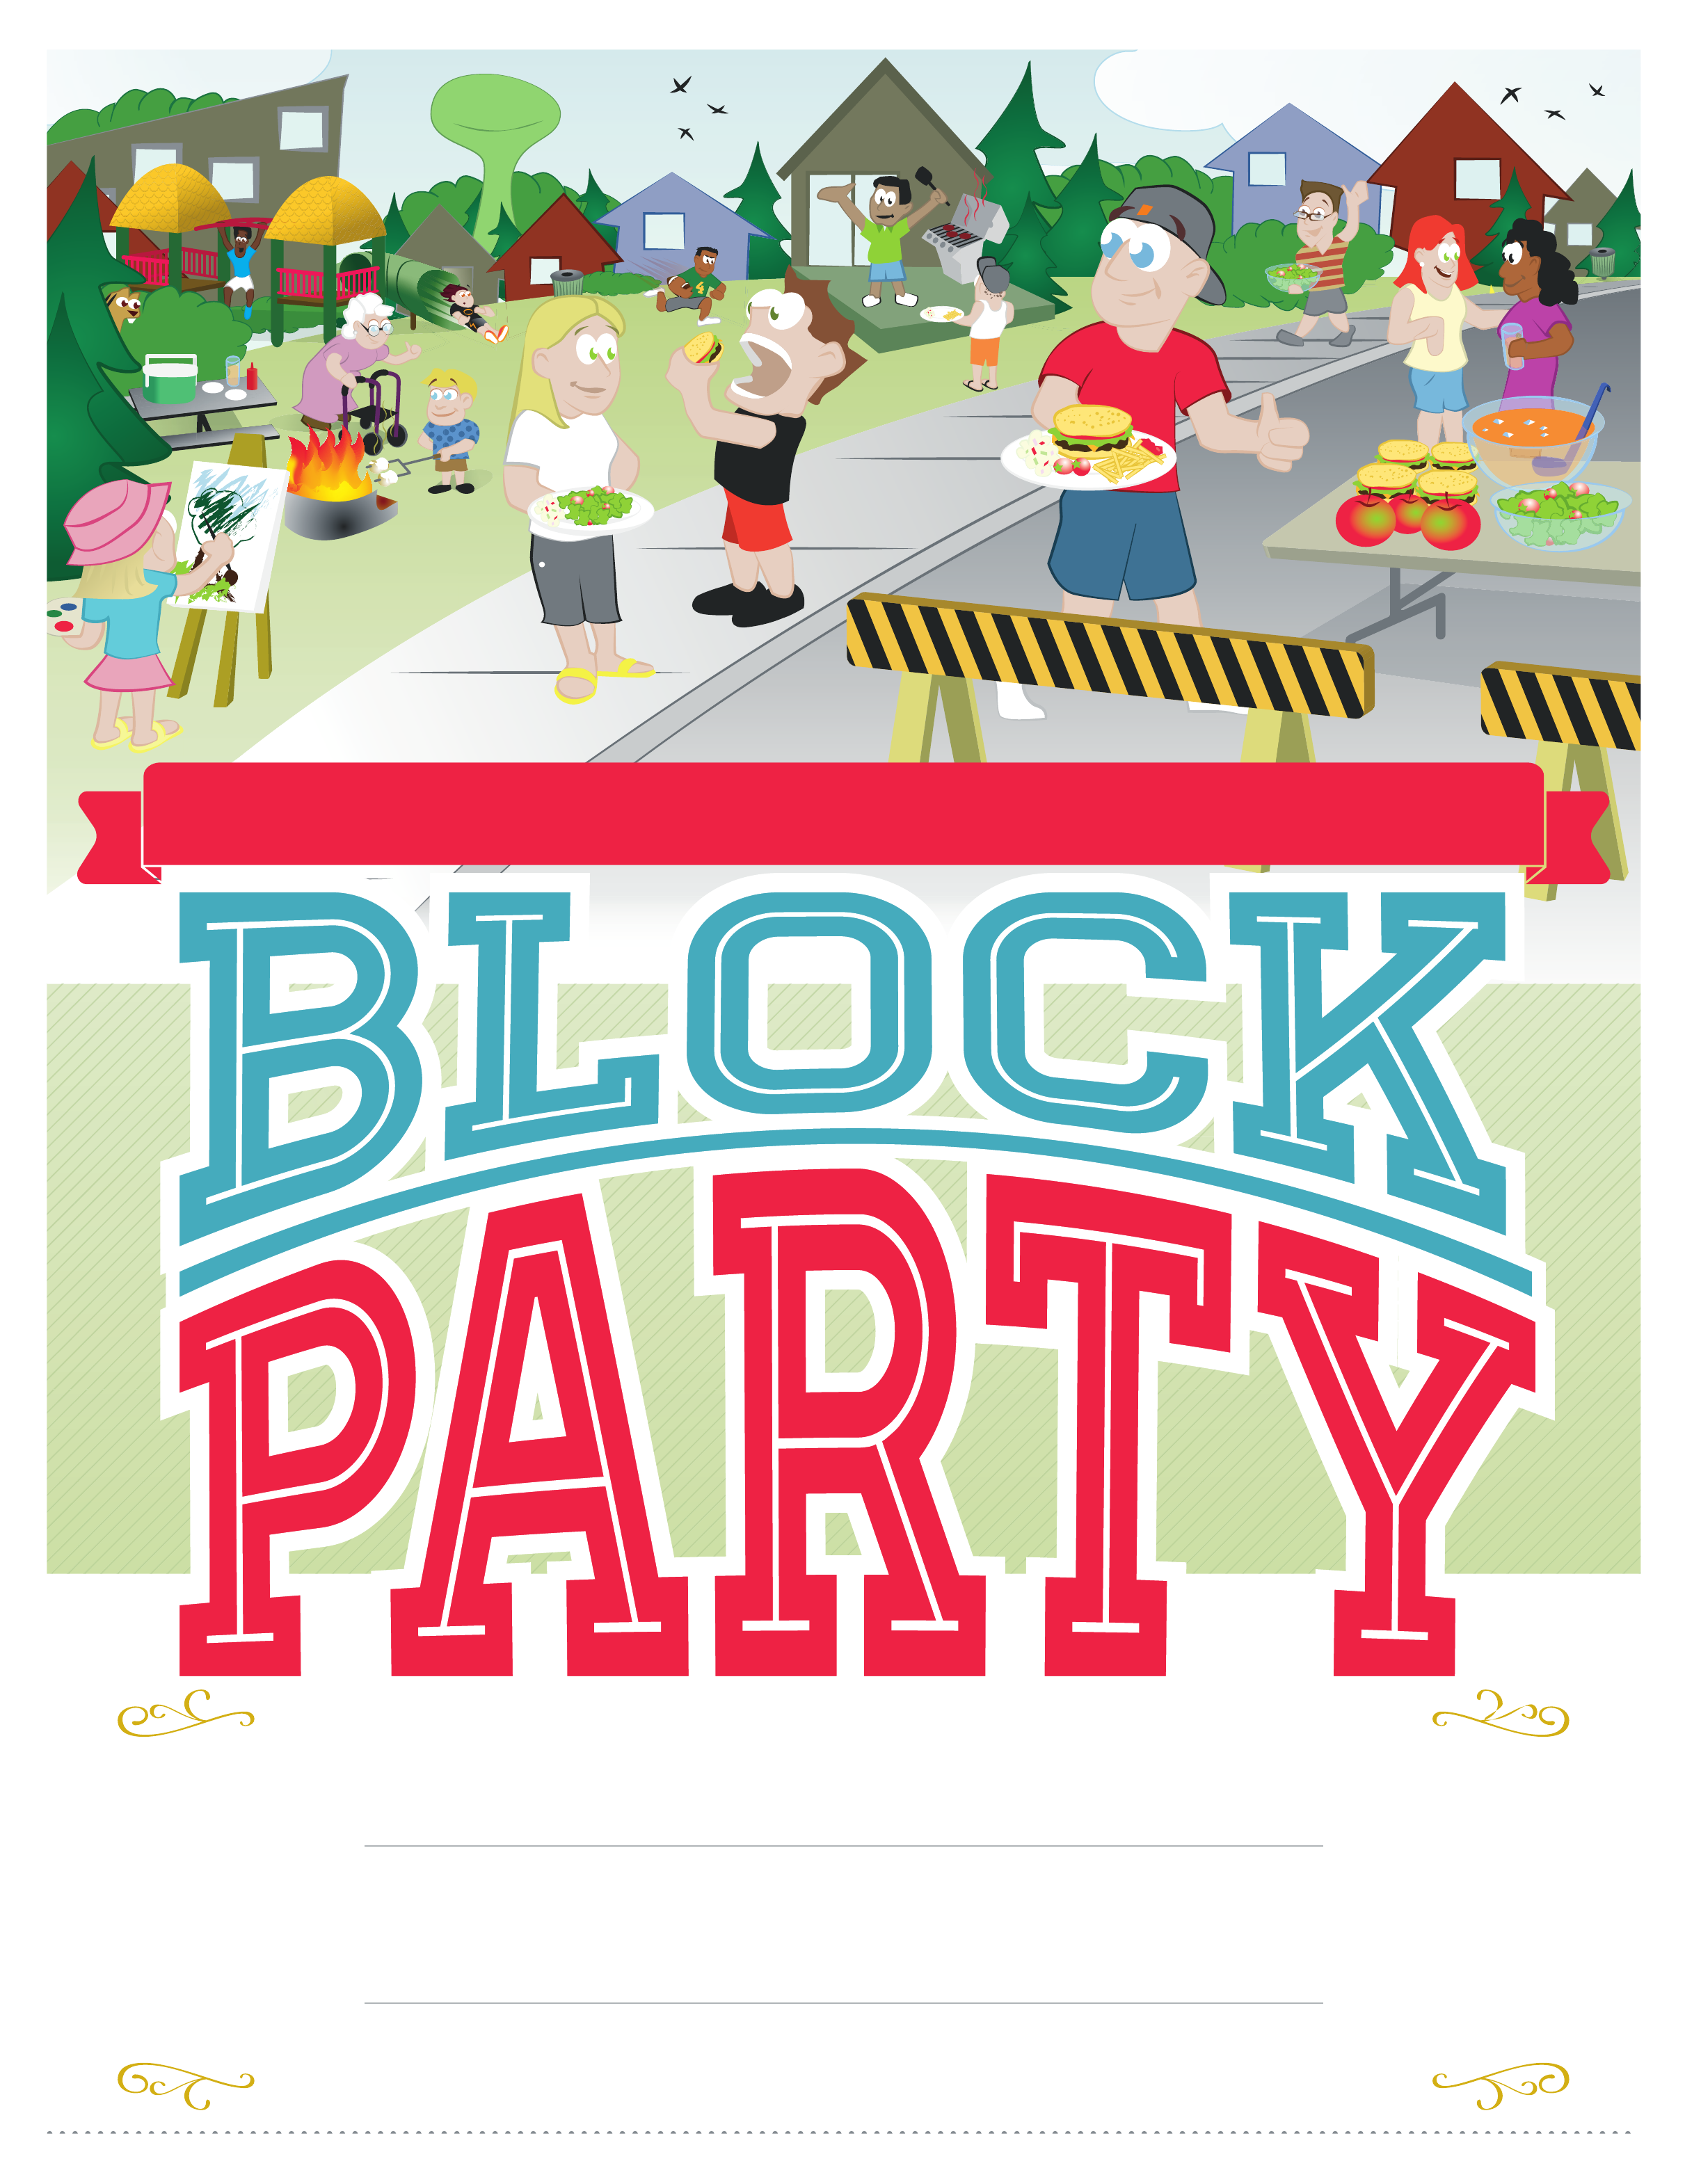 Block party flyer images copyright free clipart jpg free stock Block Party Clipart (96+ images in Collection) Page 1 jpg free stock